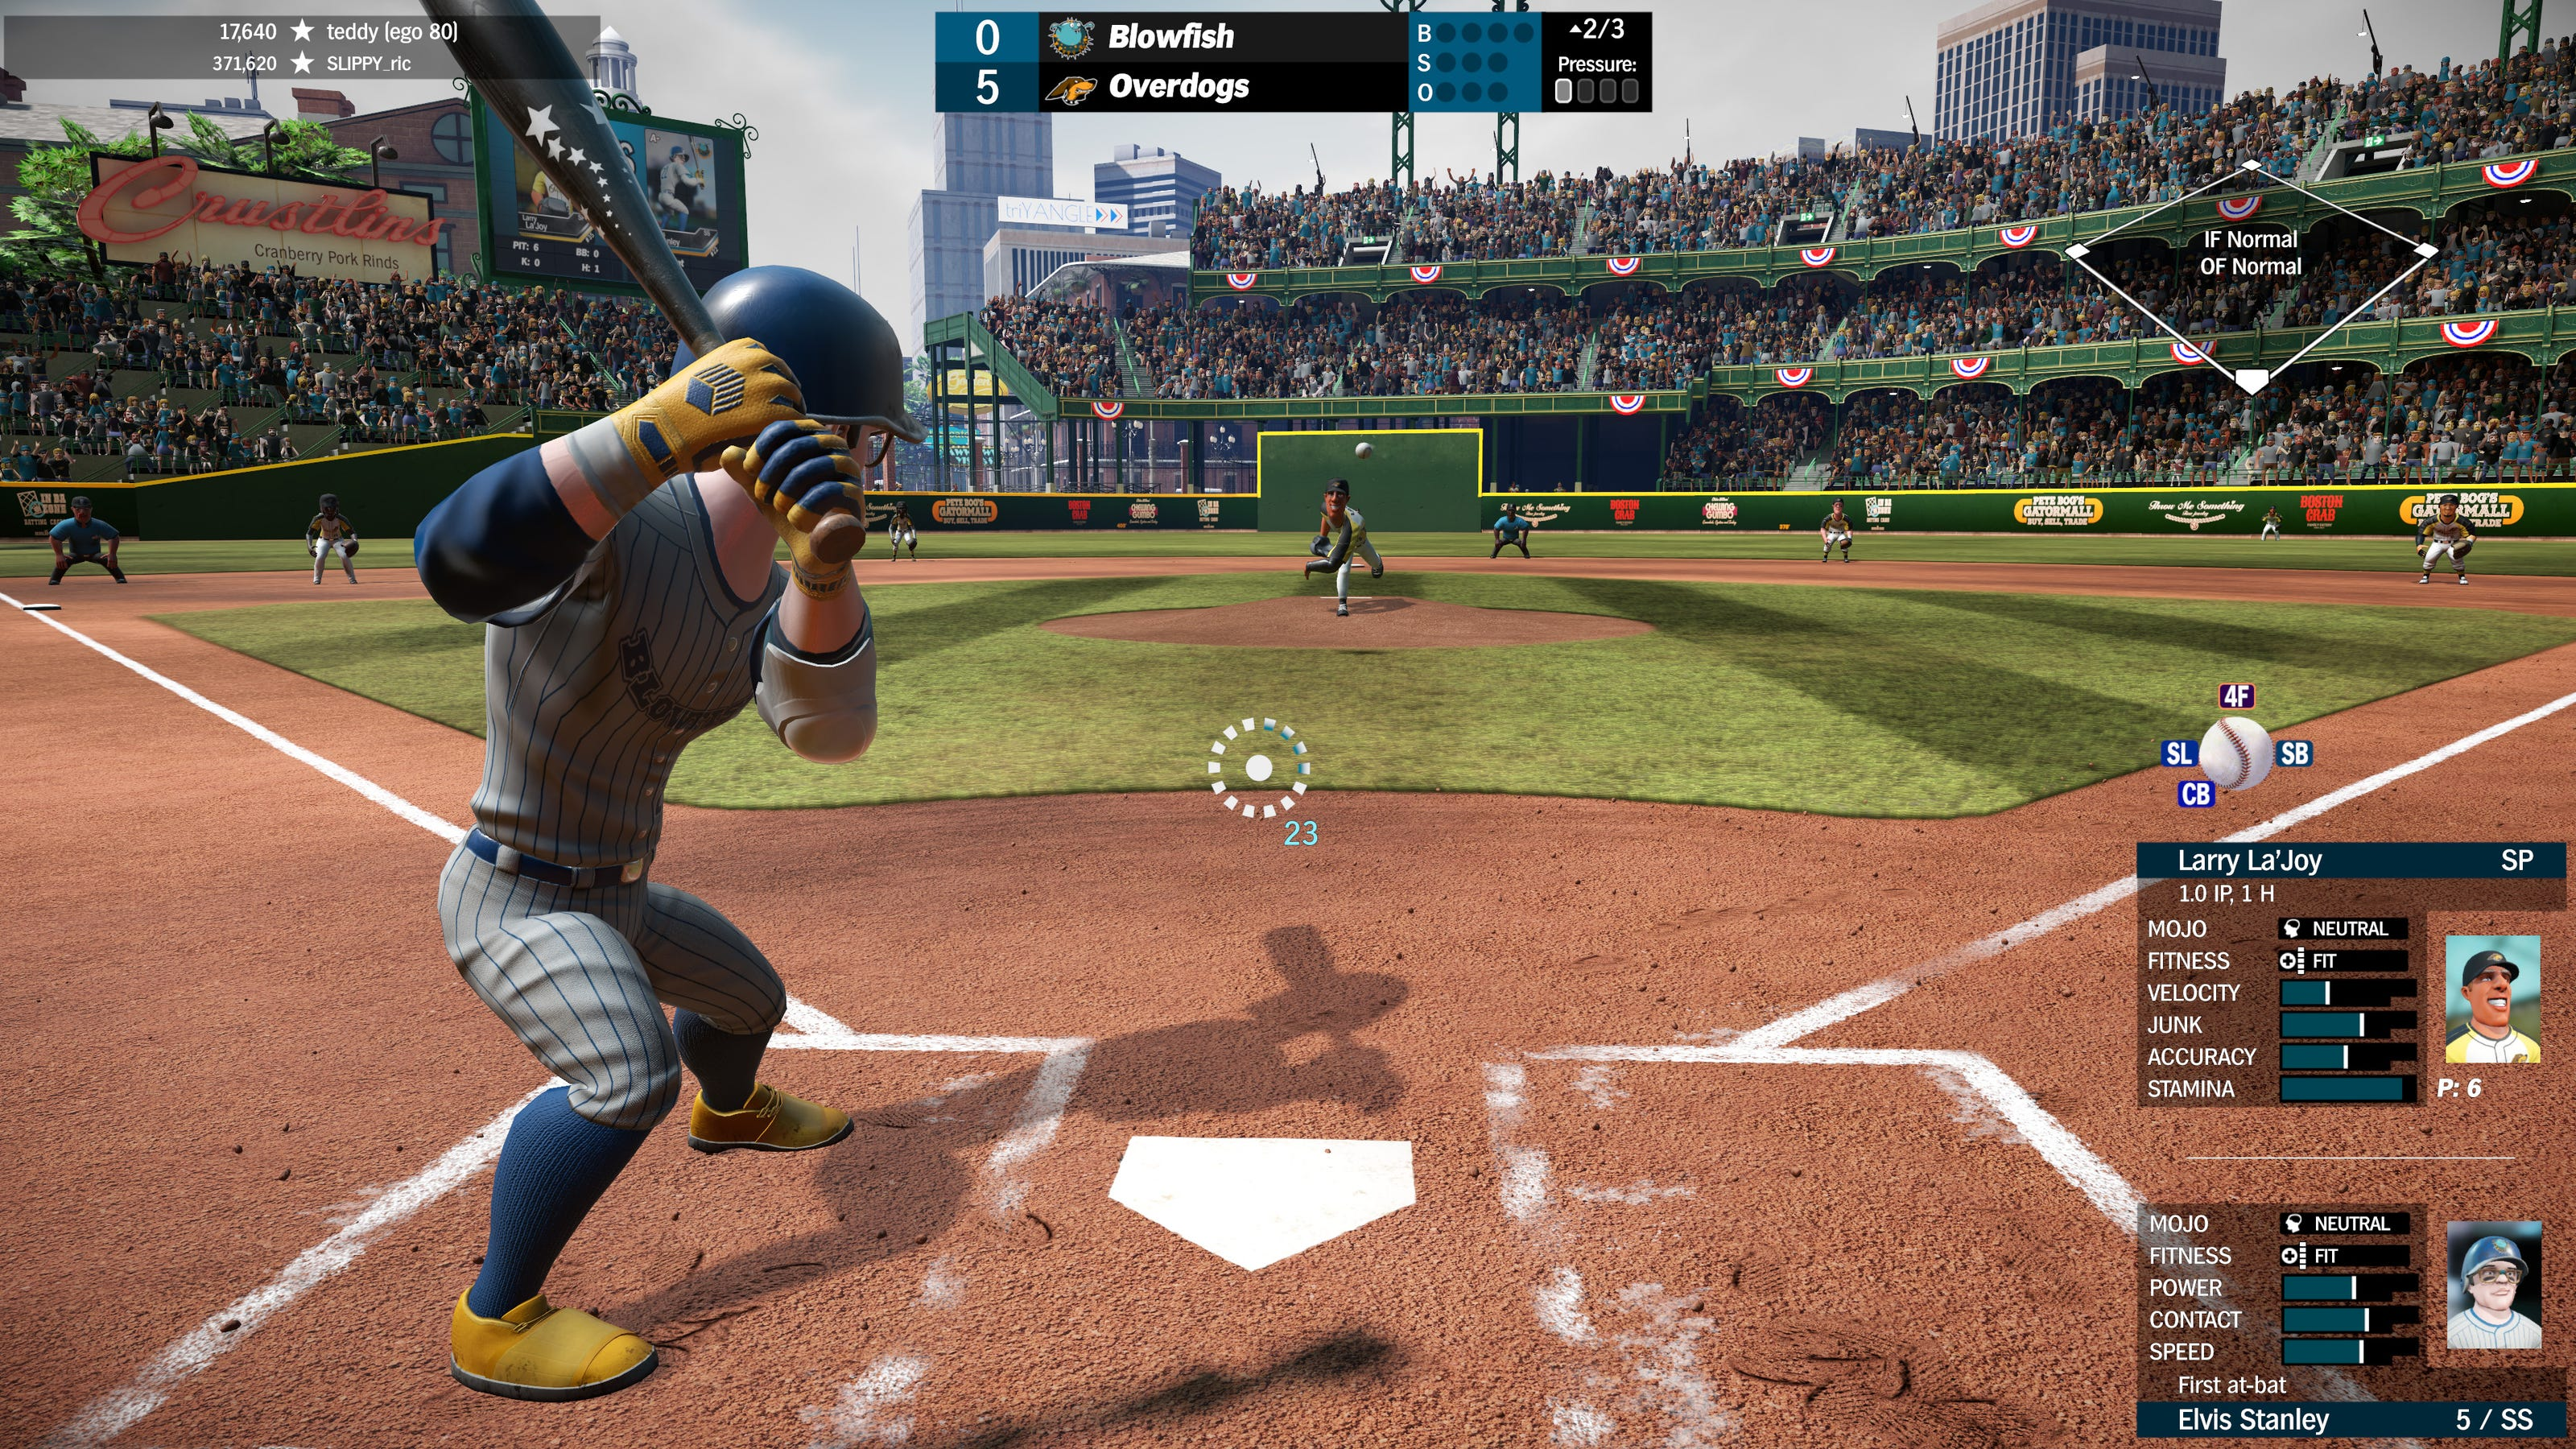 Batter up! EA Sports gets back into baseball video games with 'Super Mega Baseball' studio deal